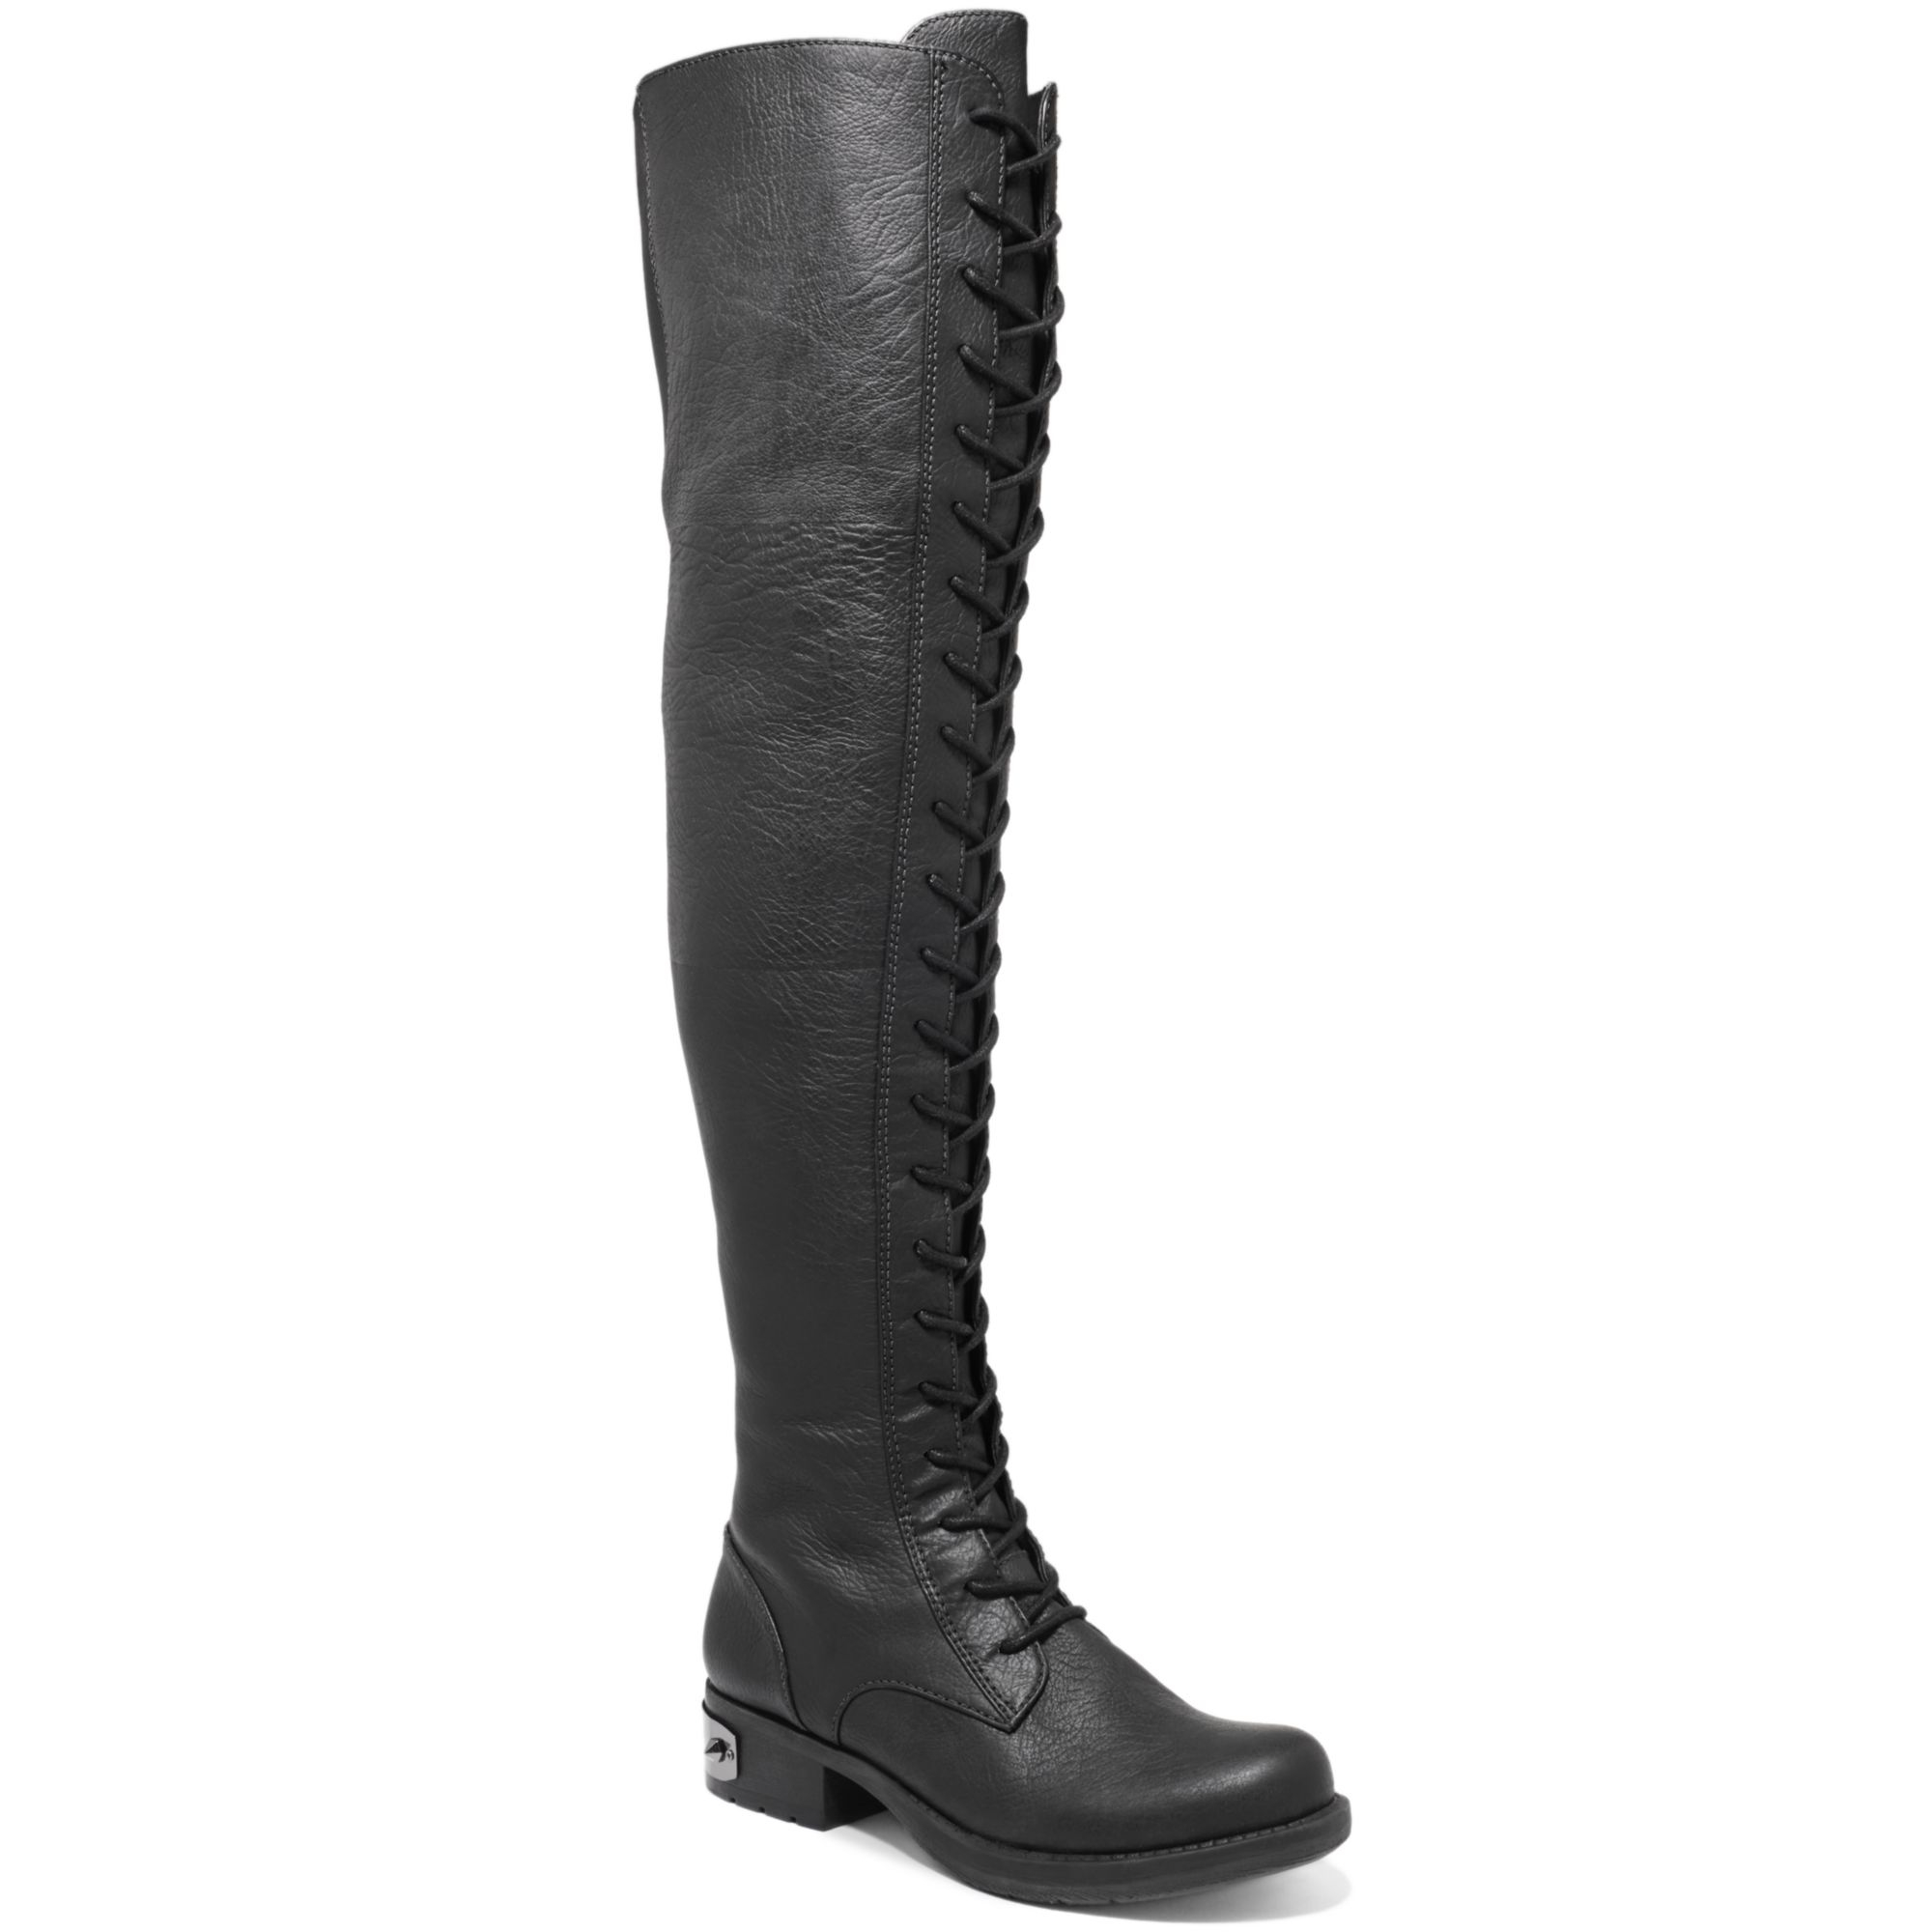 78a3785b5a6c3b Lyst - Circus by Sam Edelman Ginny Over The Knee Lace Up Boots in Black